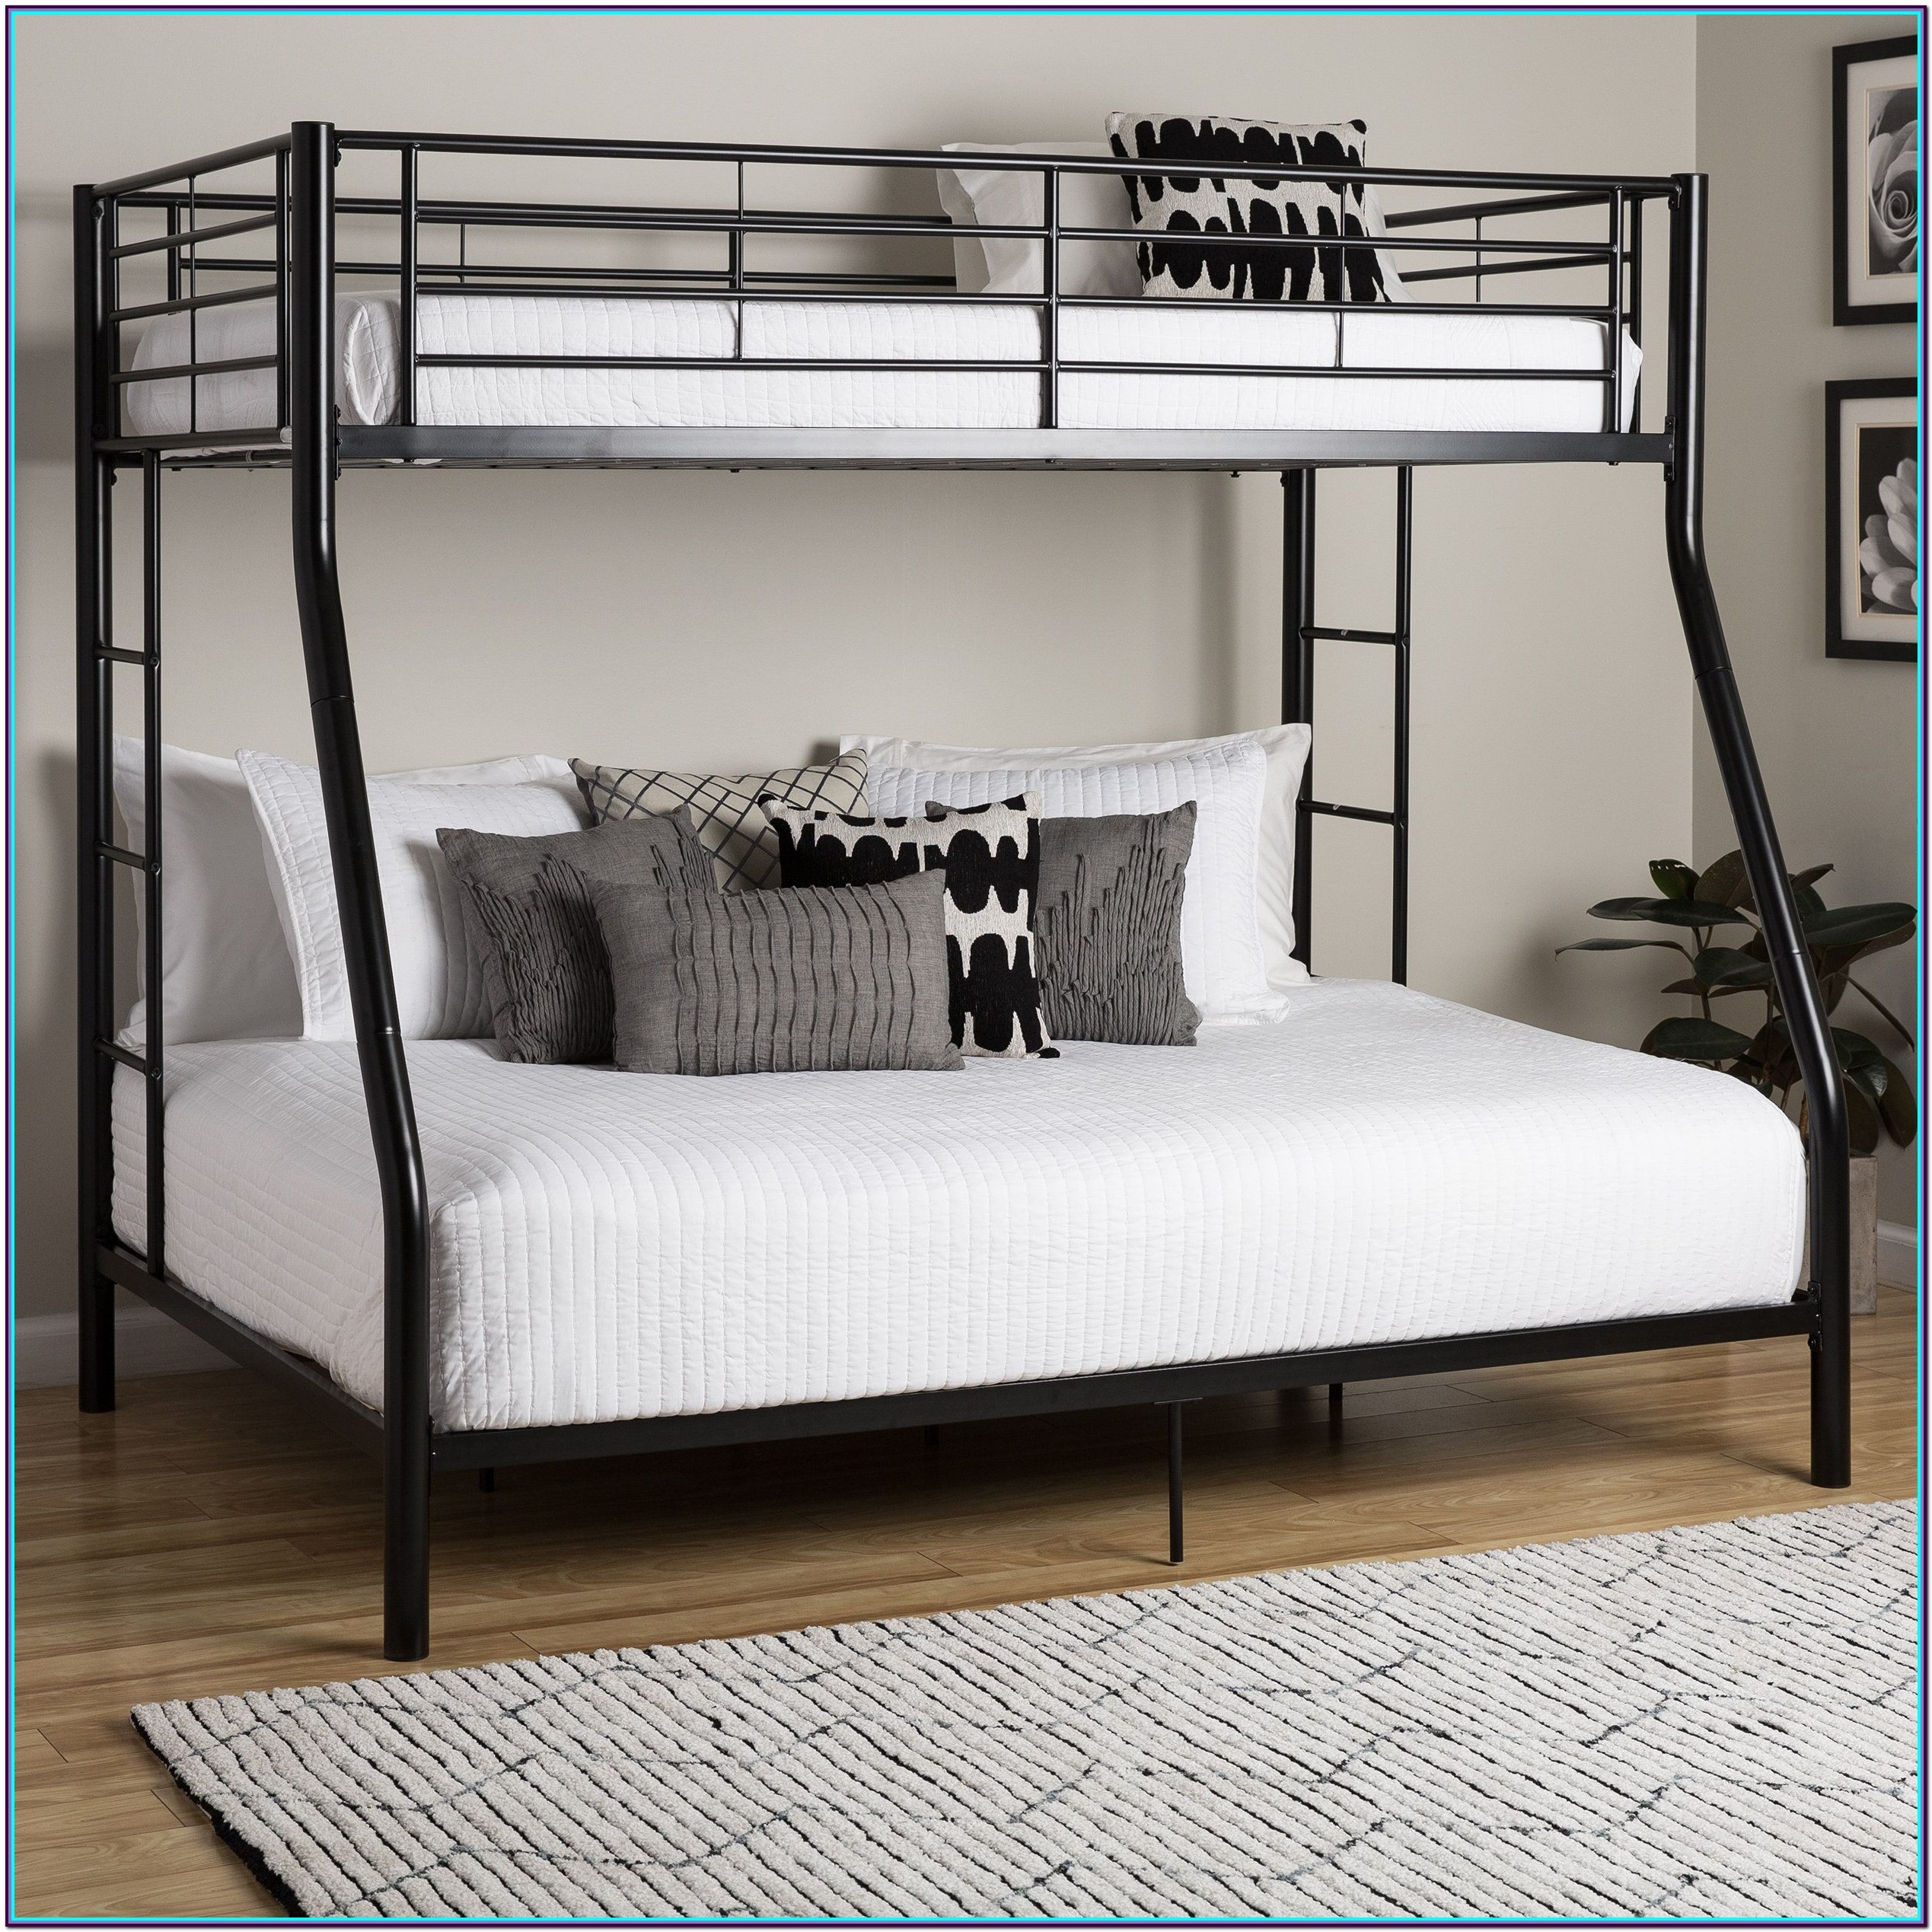 Bunk Beds For Adults Canada